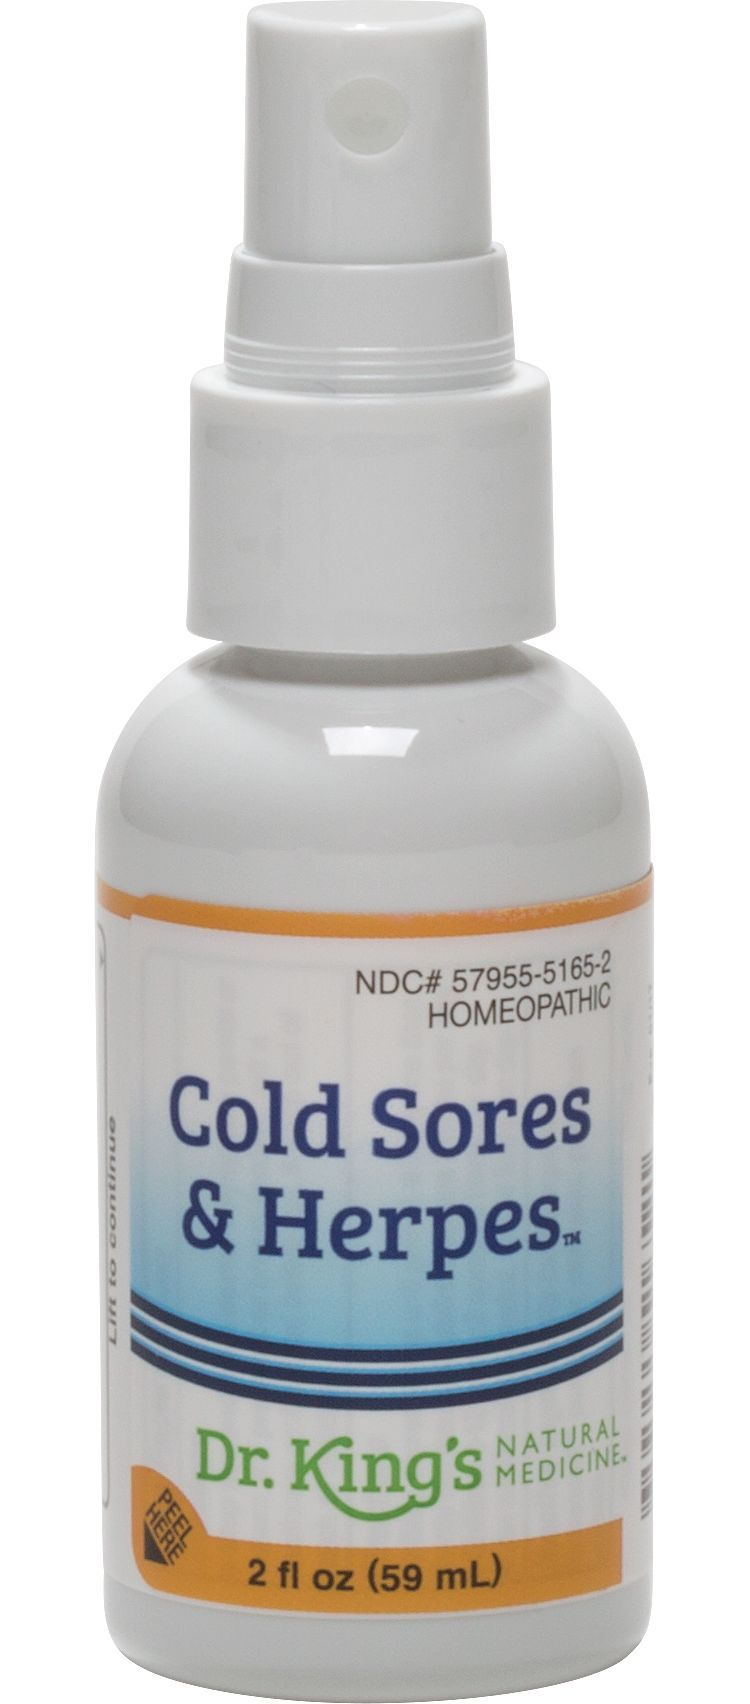 Genital sores that arent herpes dating